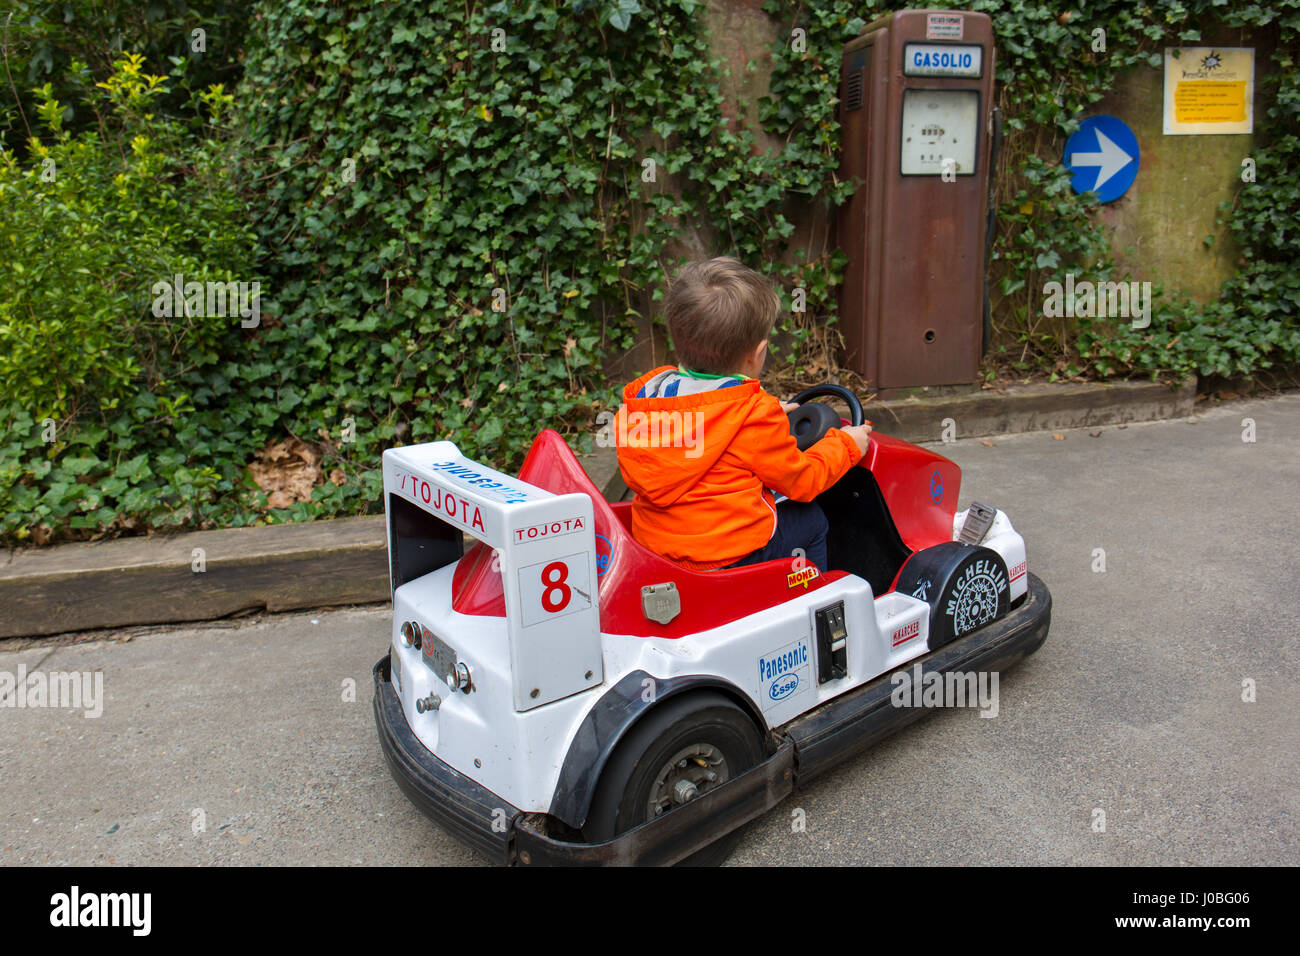 a kid little boy toddler driving an electric toy car and pulling into a gas station